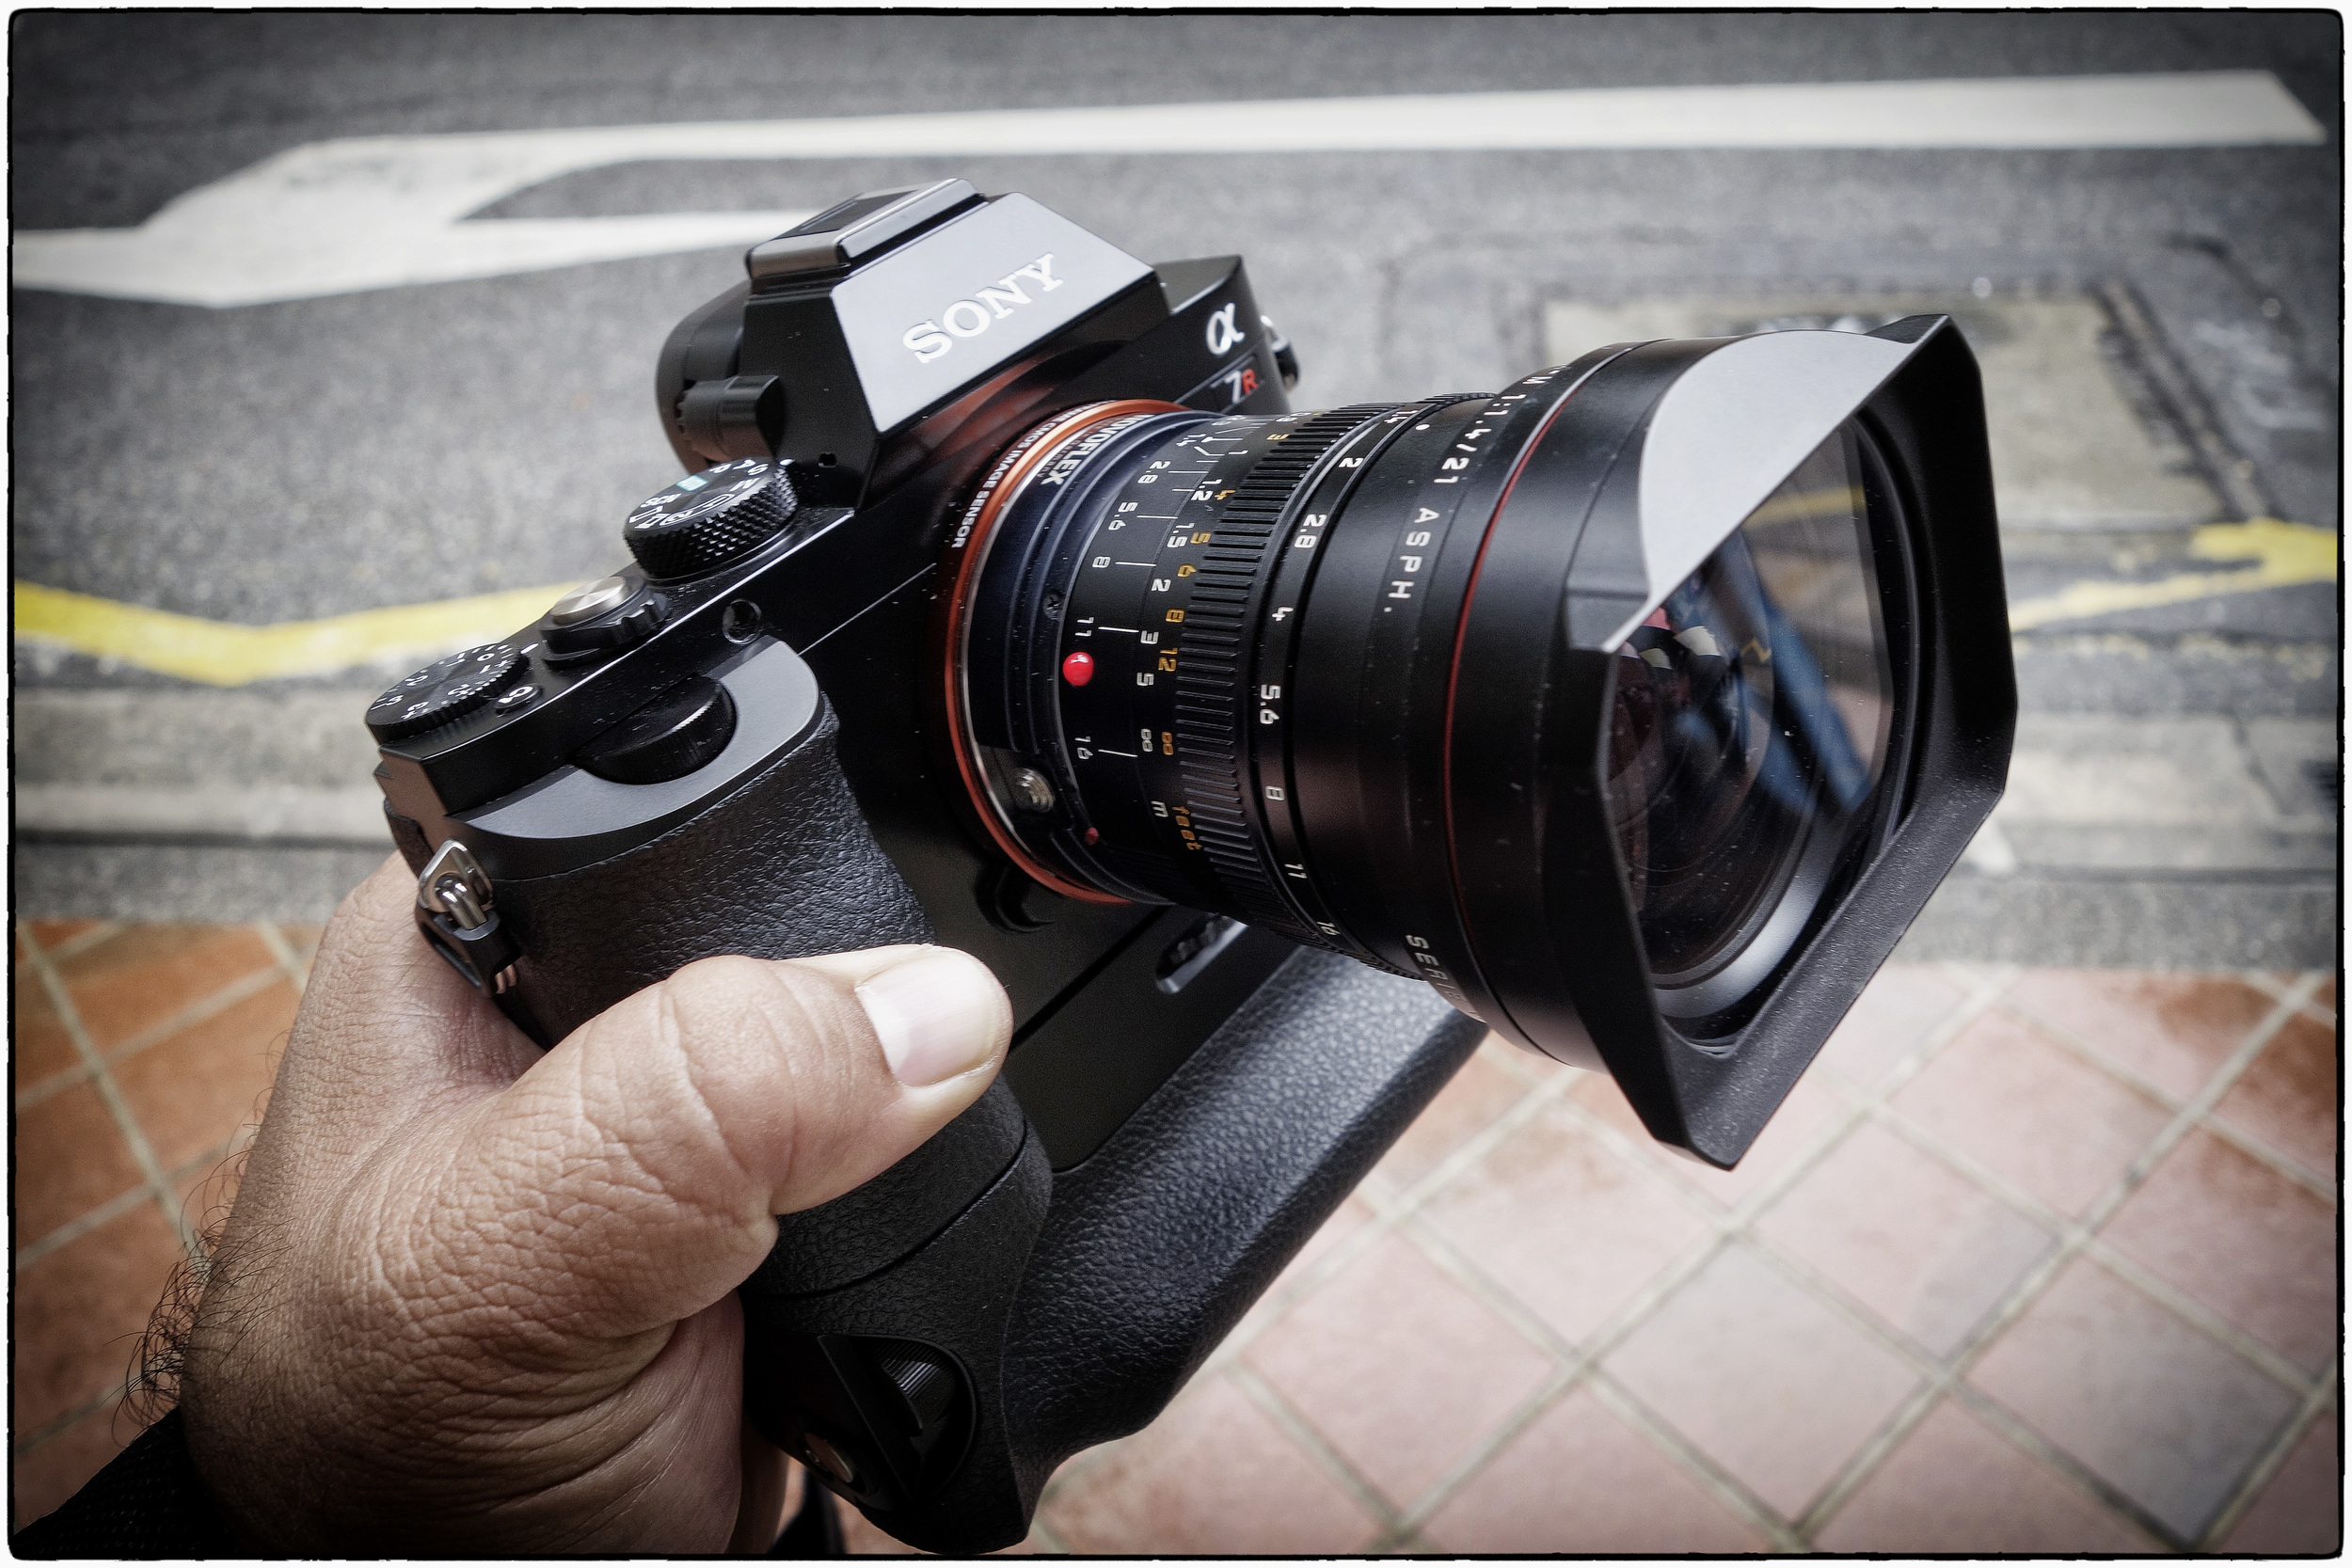 The Sony A7R with a Novoflex M to NEX mount and a Leica 21mm Summilux